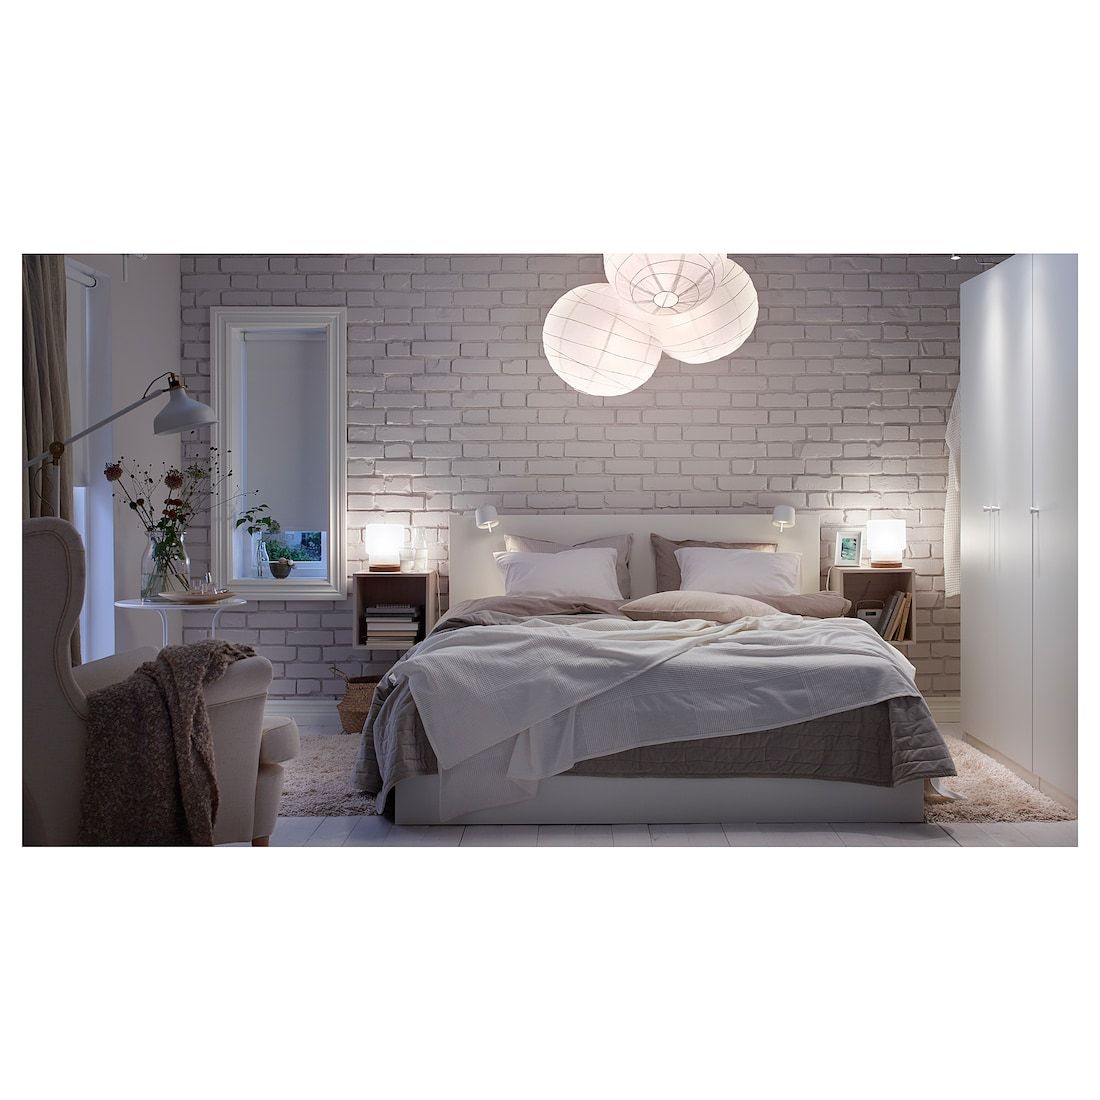 Malm High Bed Frame 4 Storage Boxes White Lonset High Bed